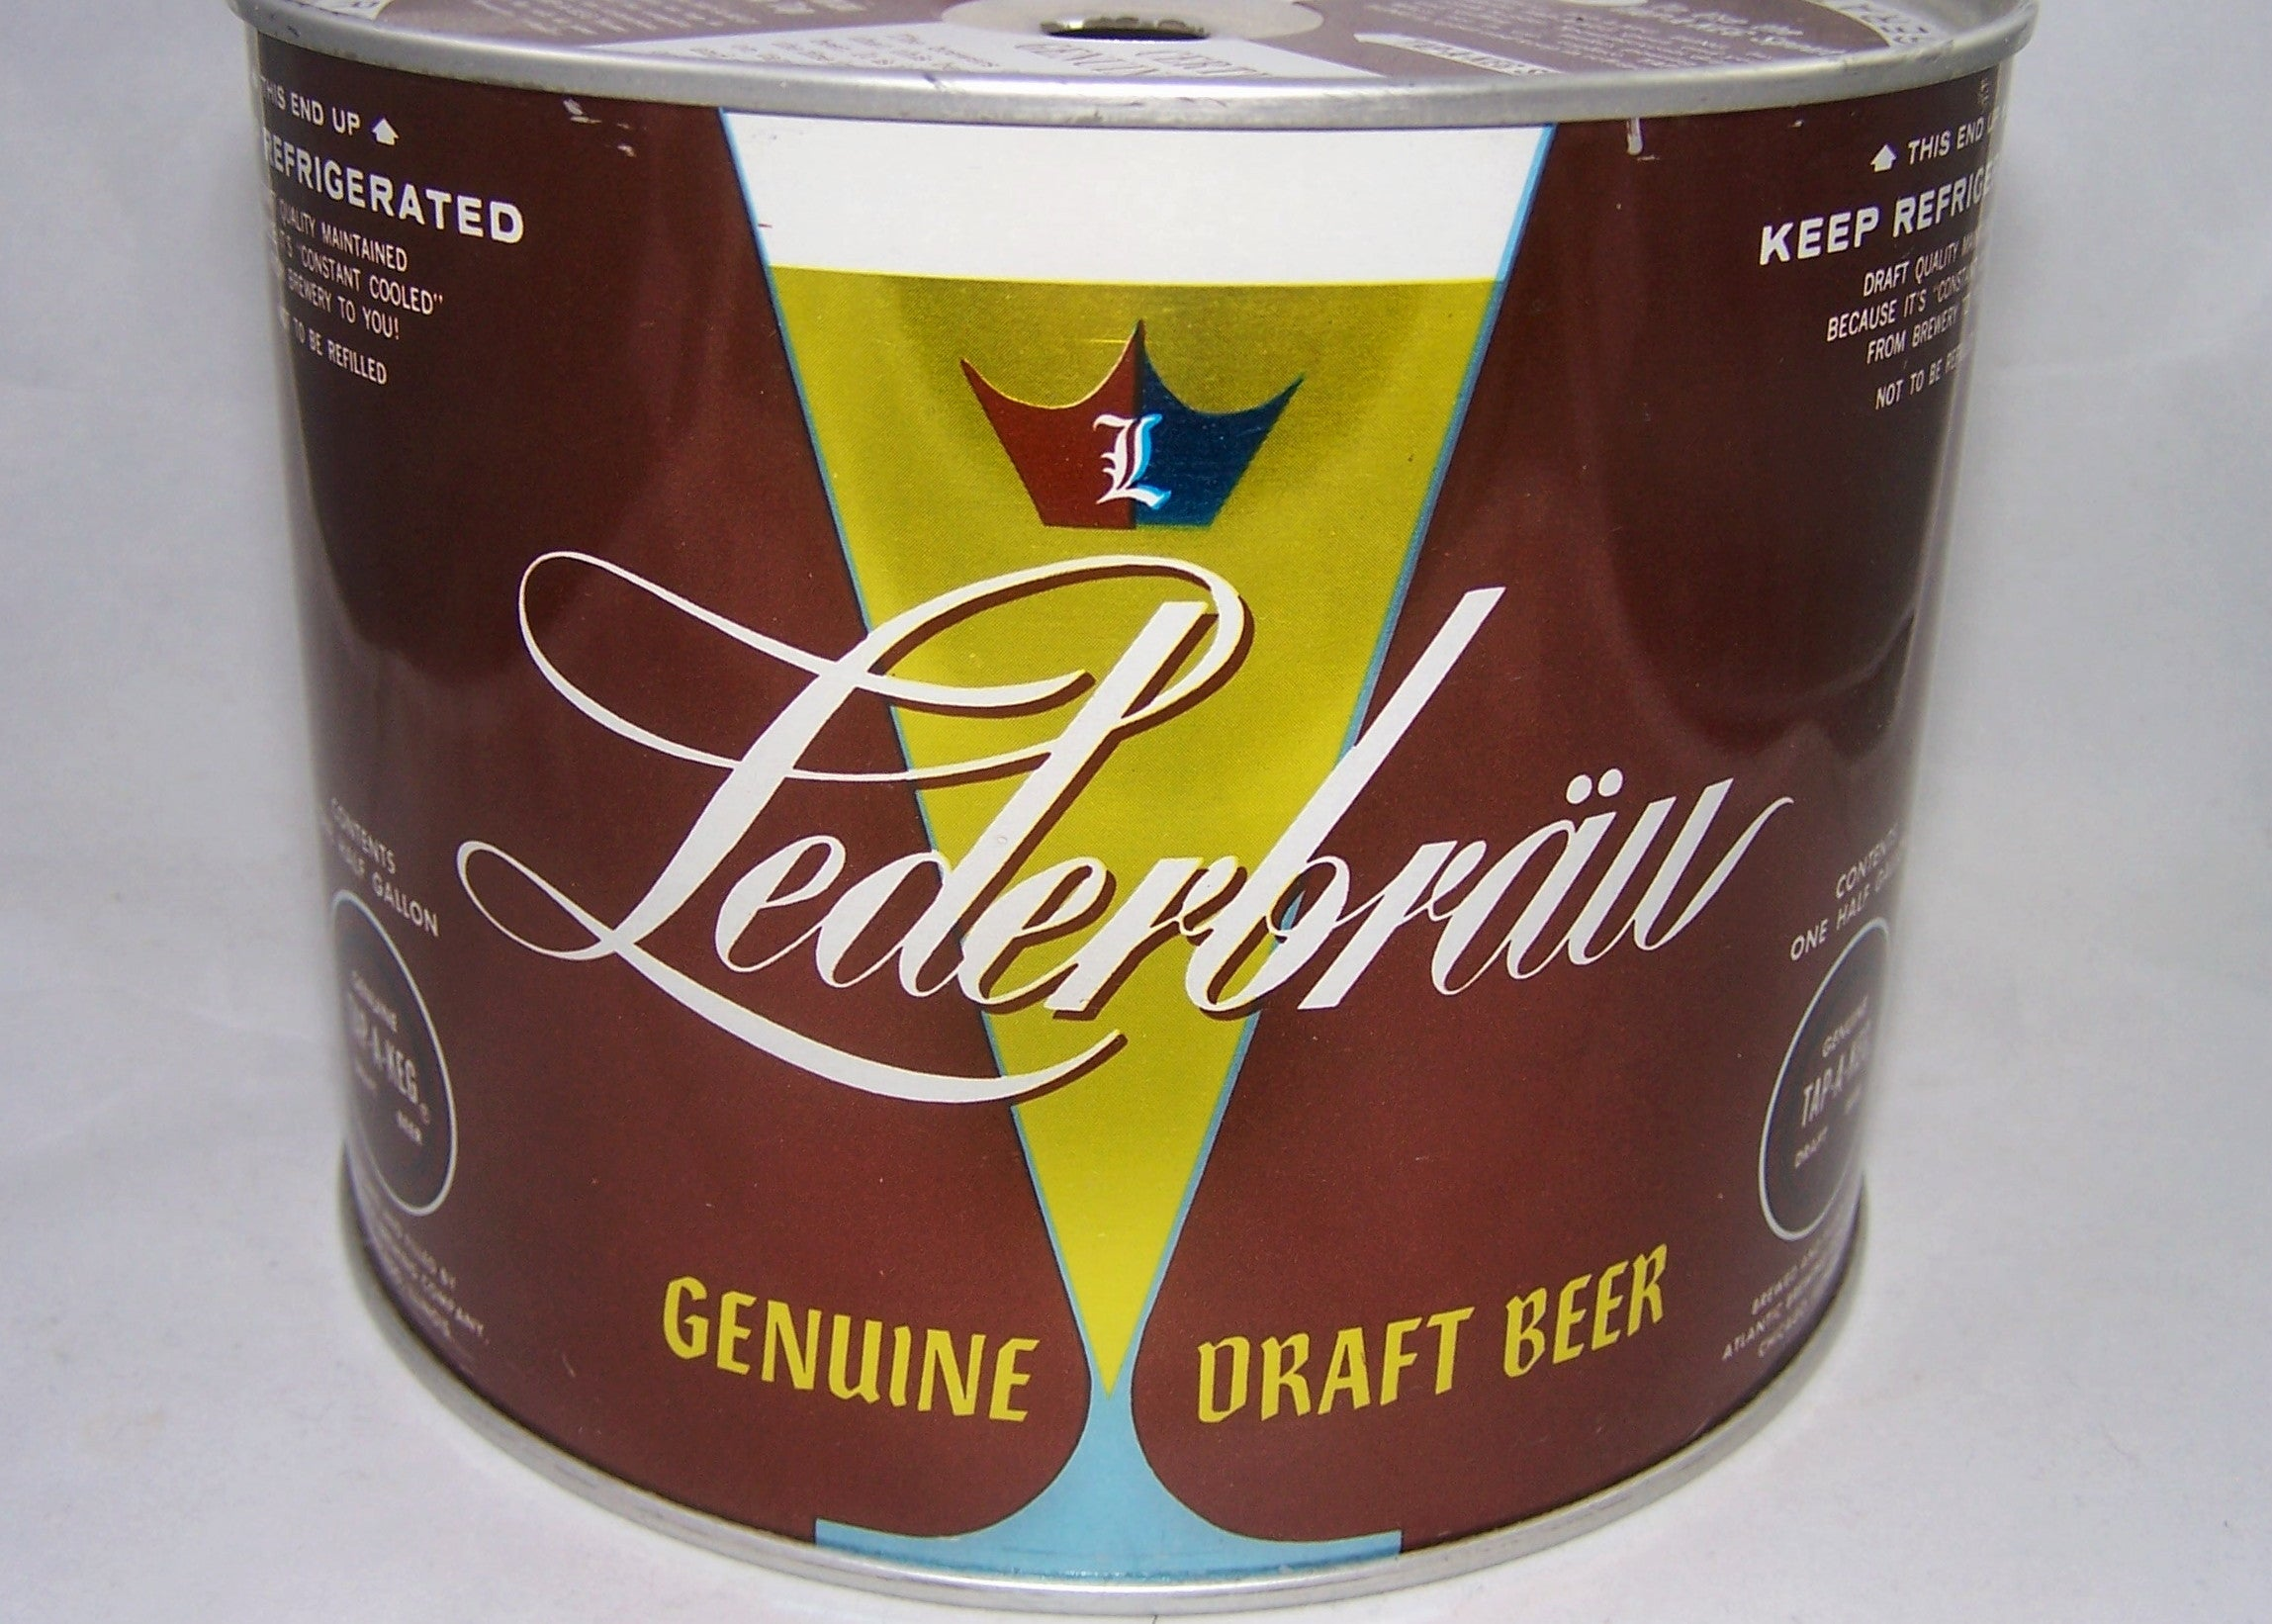 Lederbrau Half Gallon, USBC 245-10, Grade 1/1+ Sold on 07/01/17